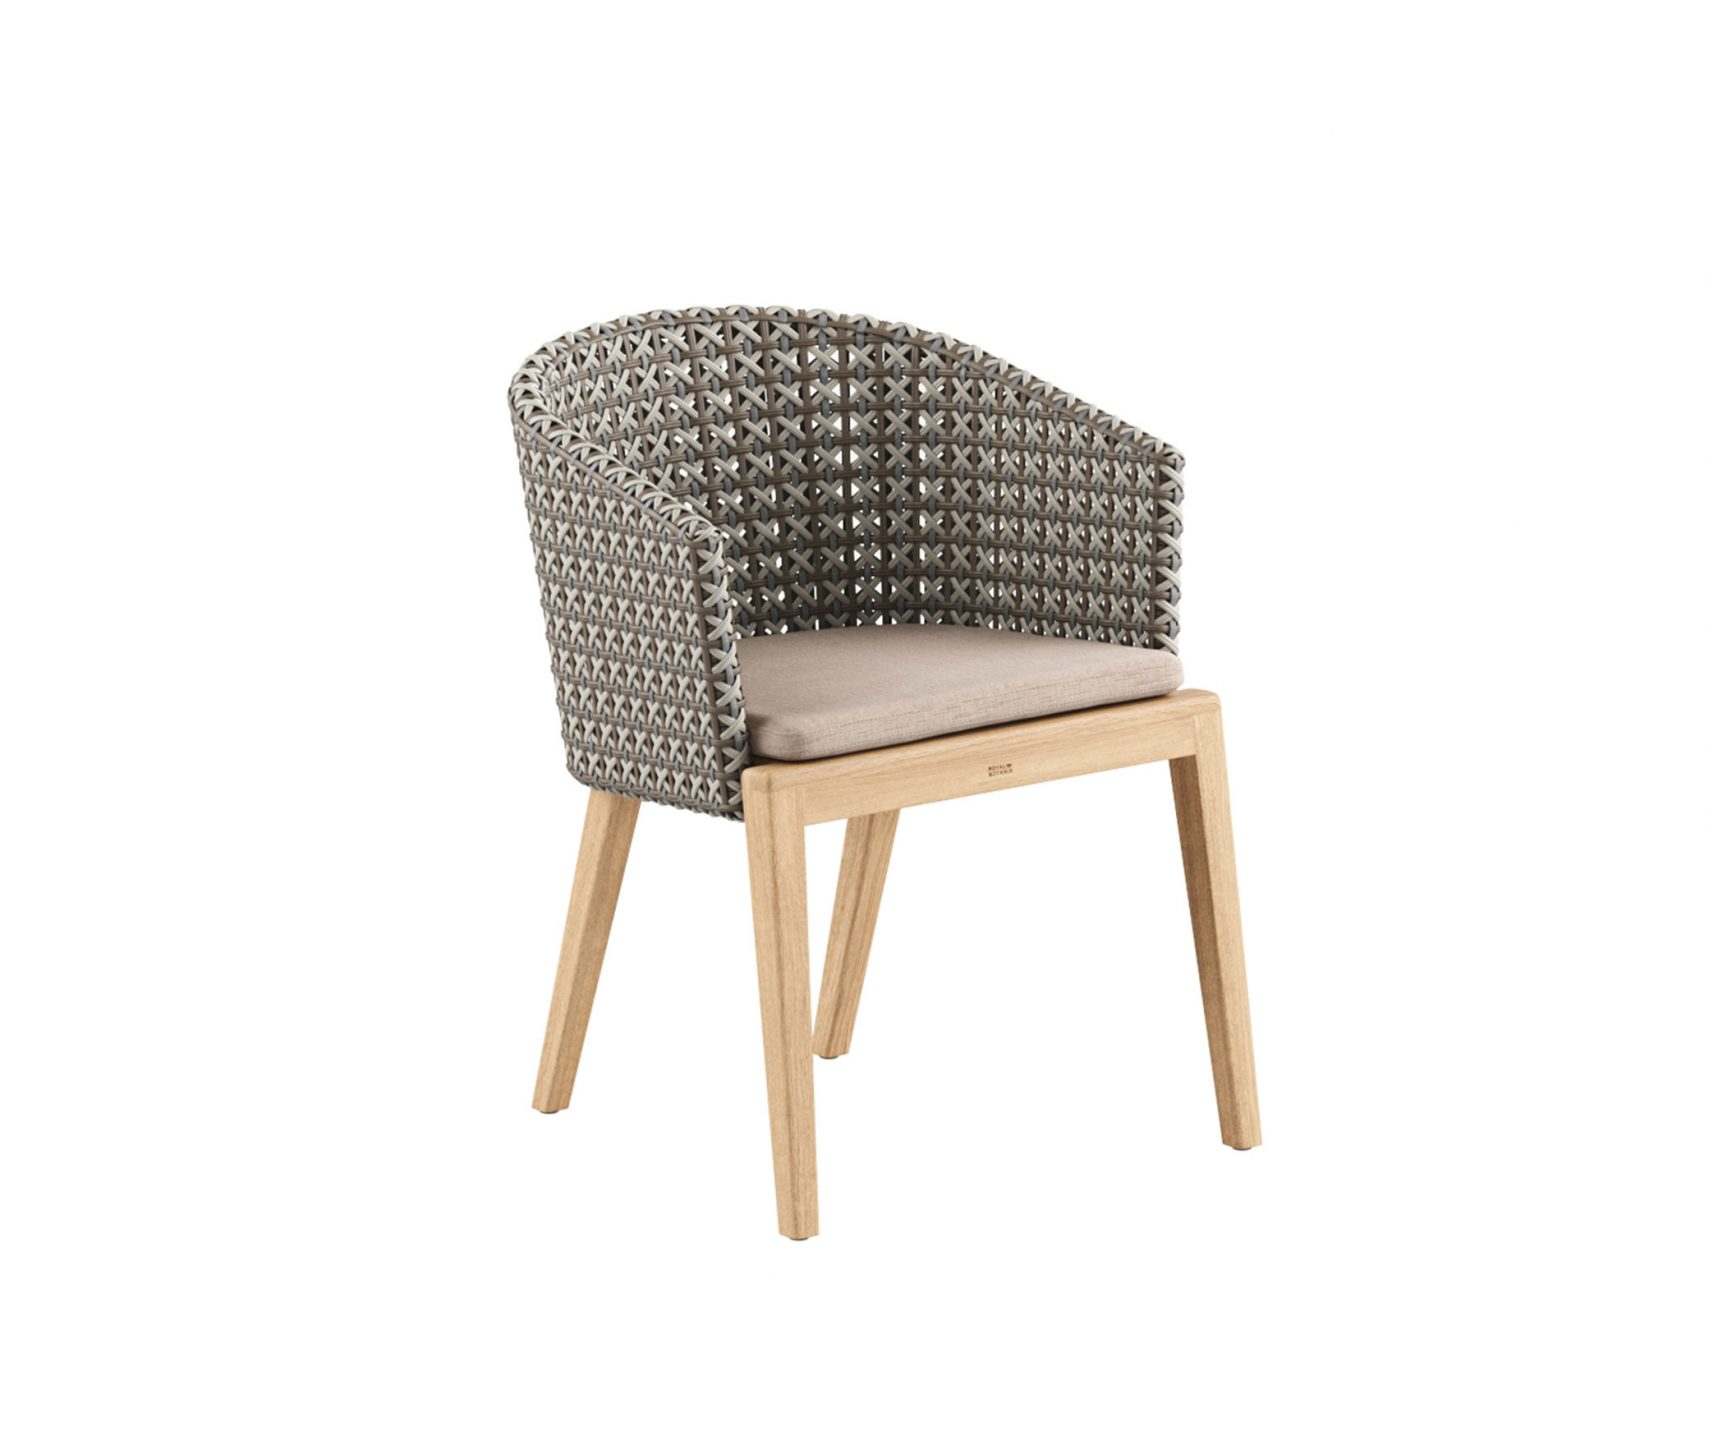 Royal-Botania_Calypso-Chair-Woven-Back_int_products